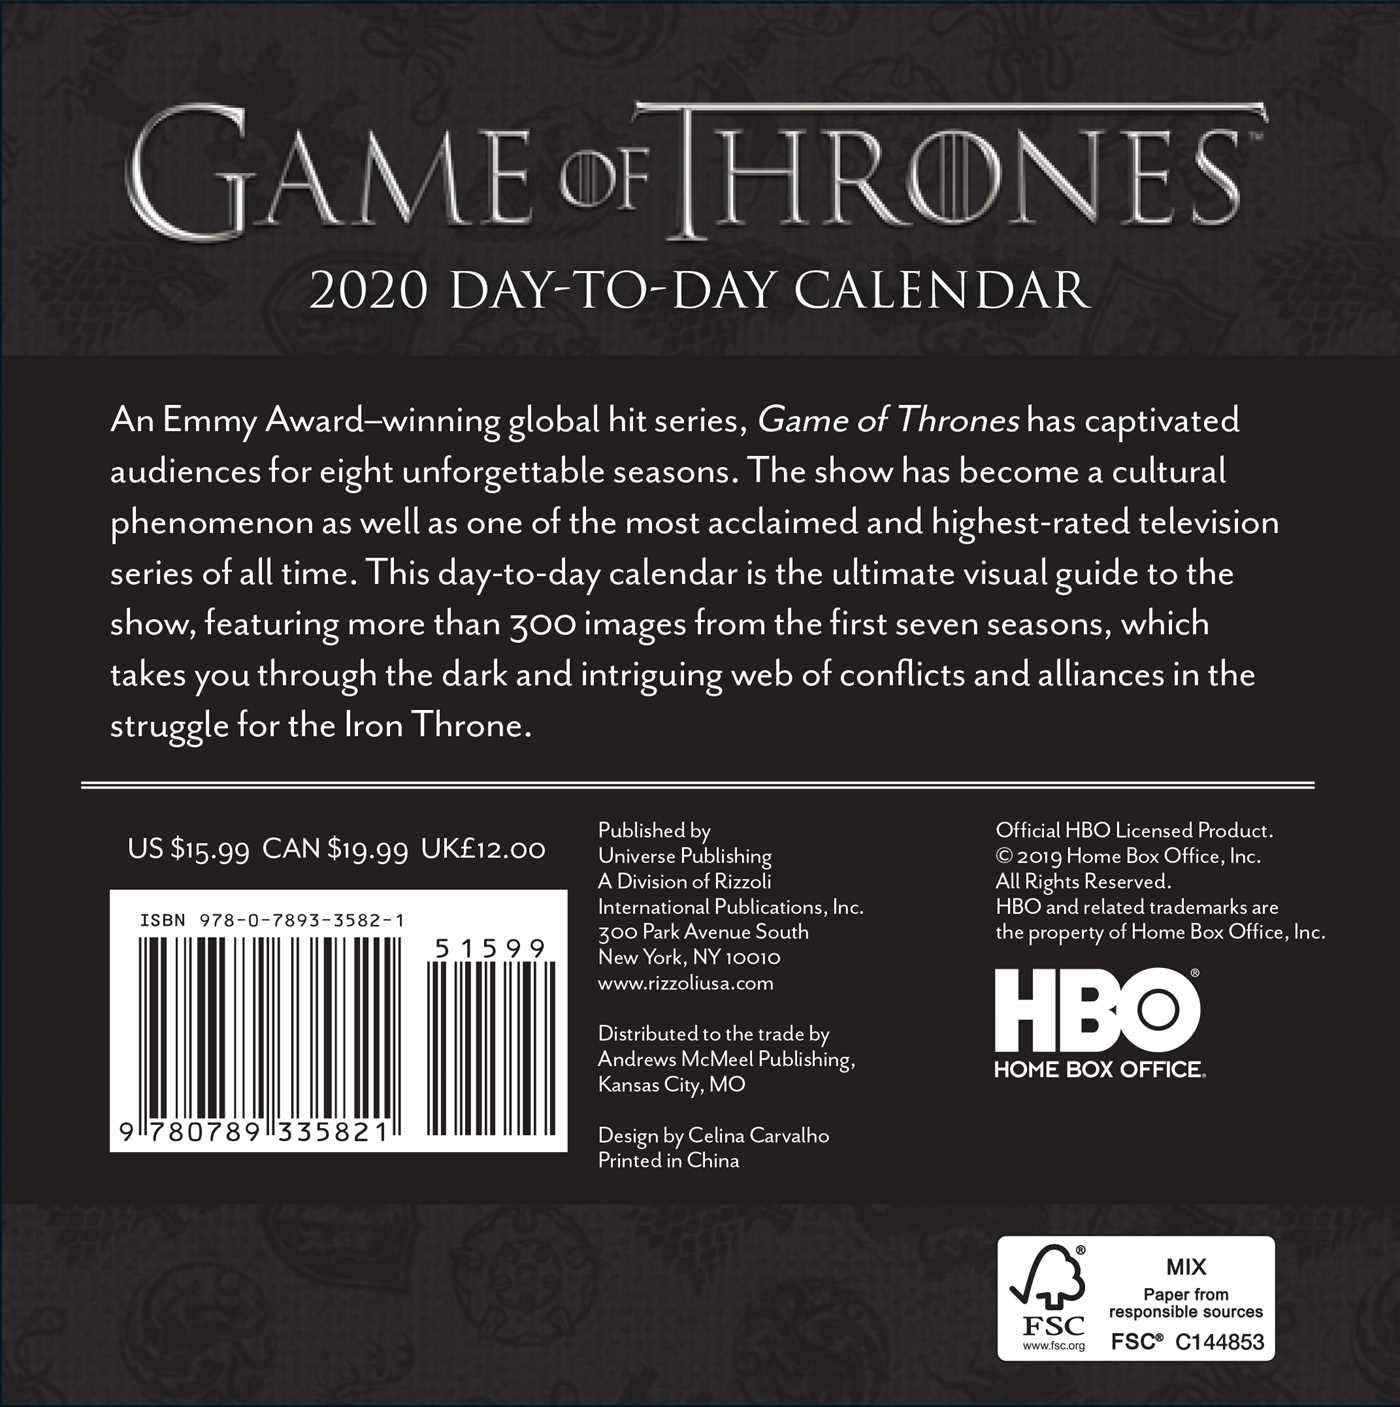 Hbo: Game of Thrones 2020 Day-to-Day Calendar: Amazon.es: Hbo ...